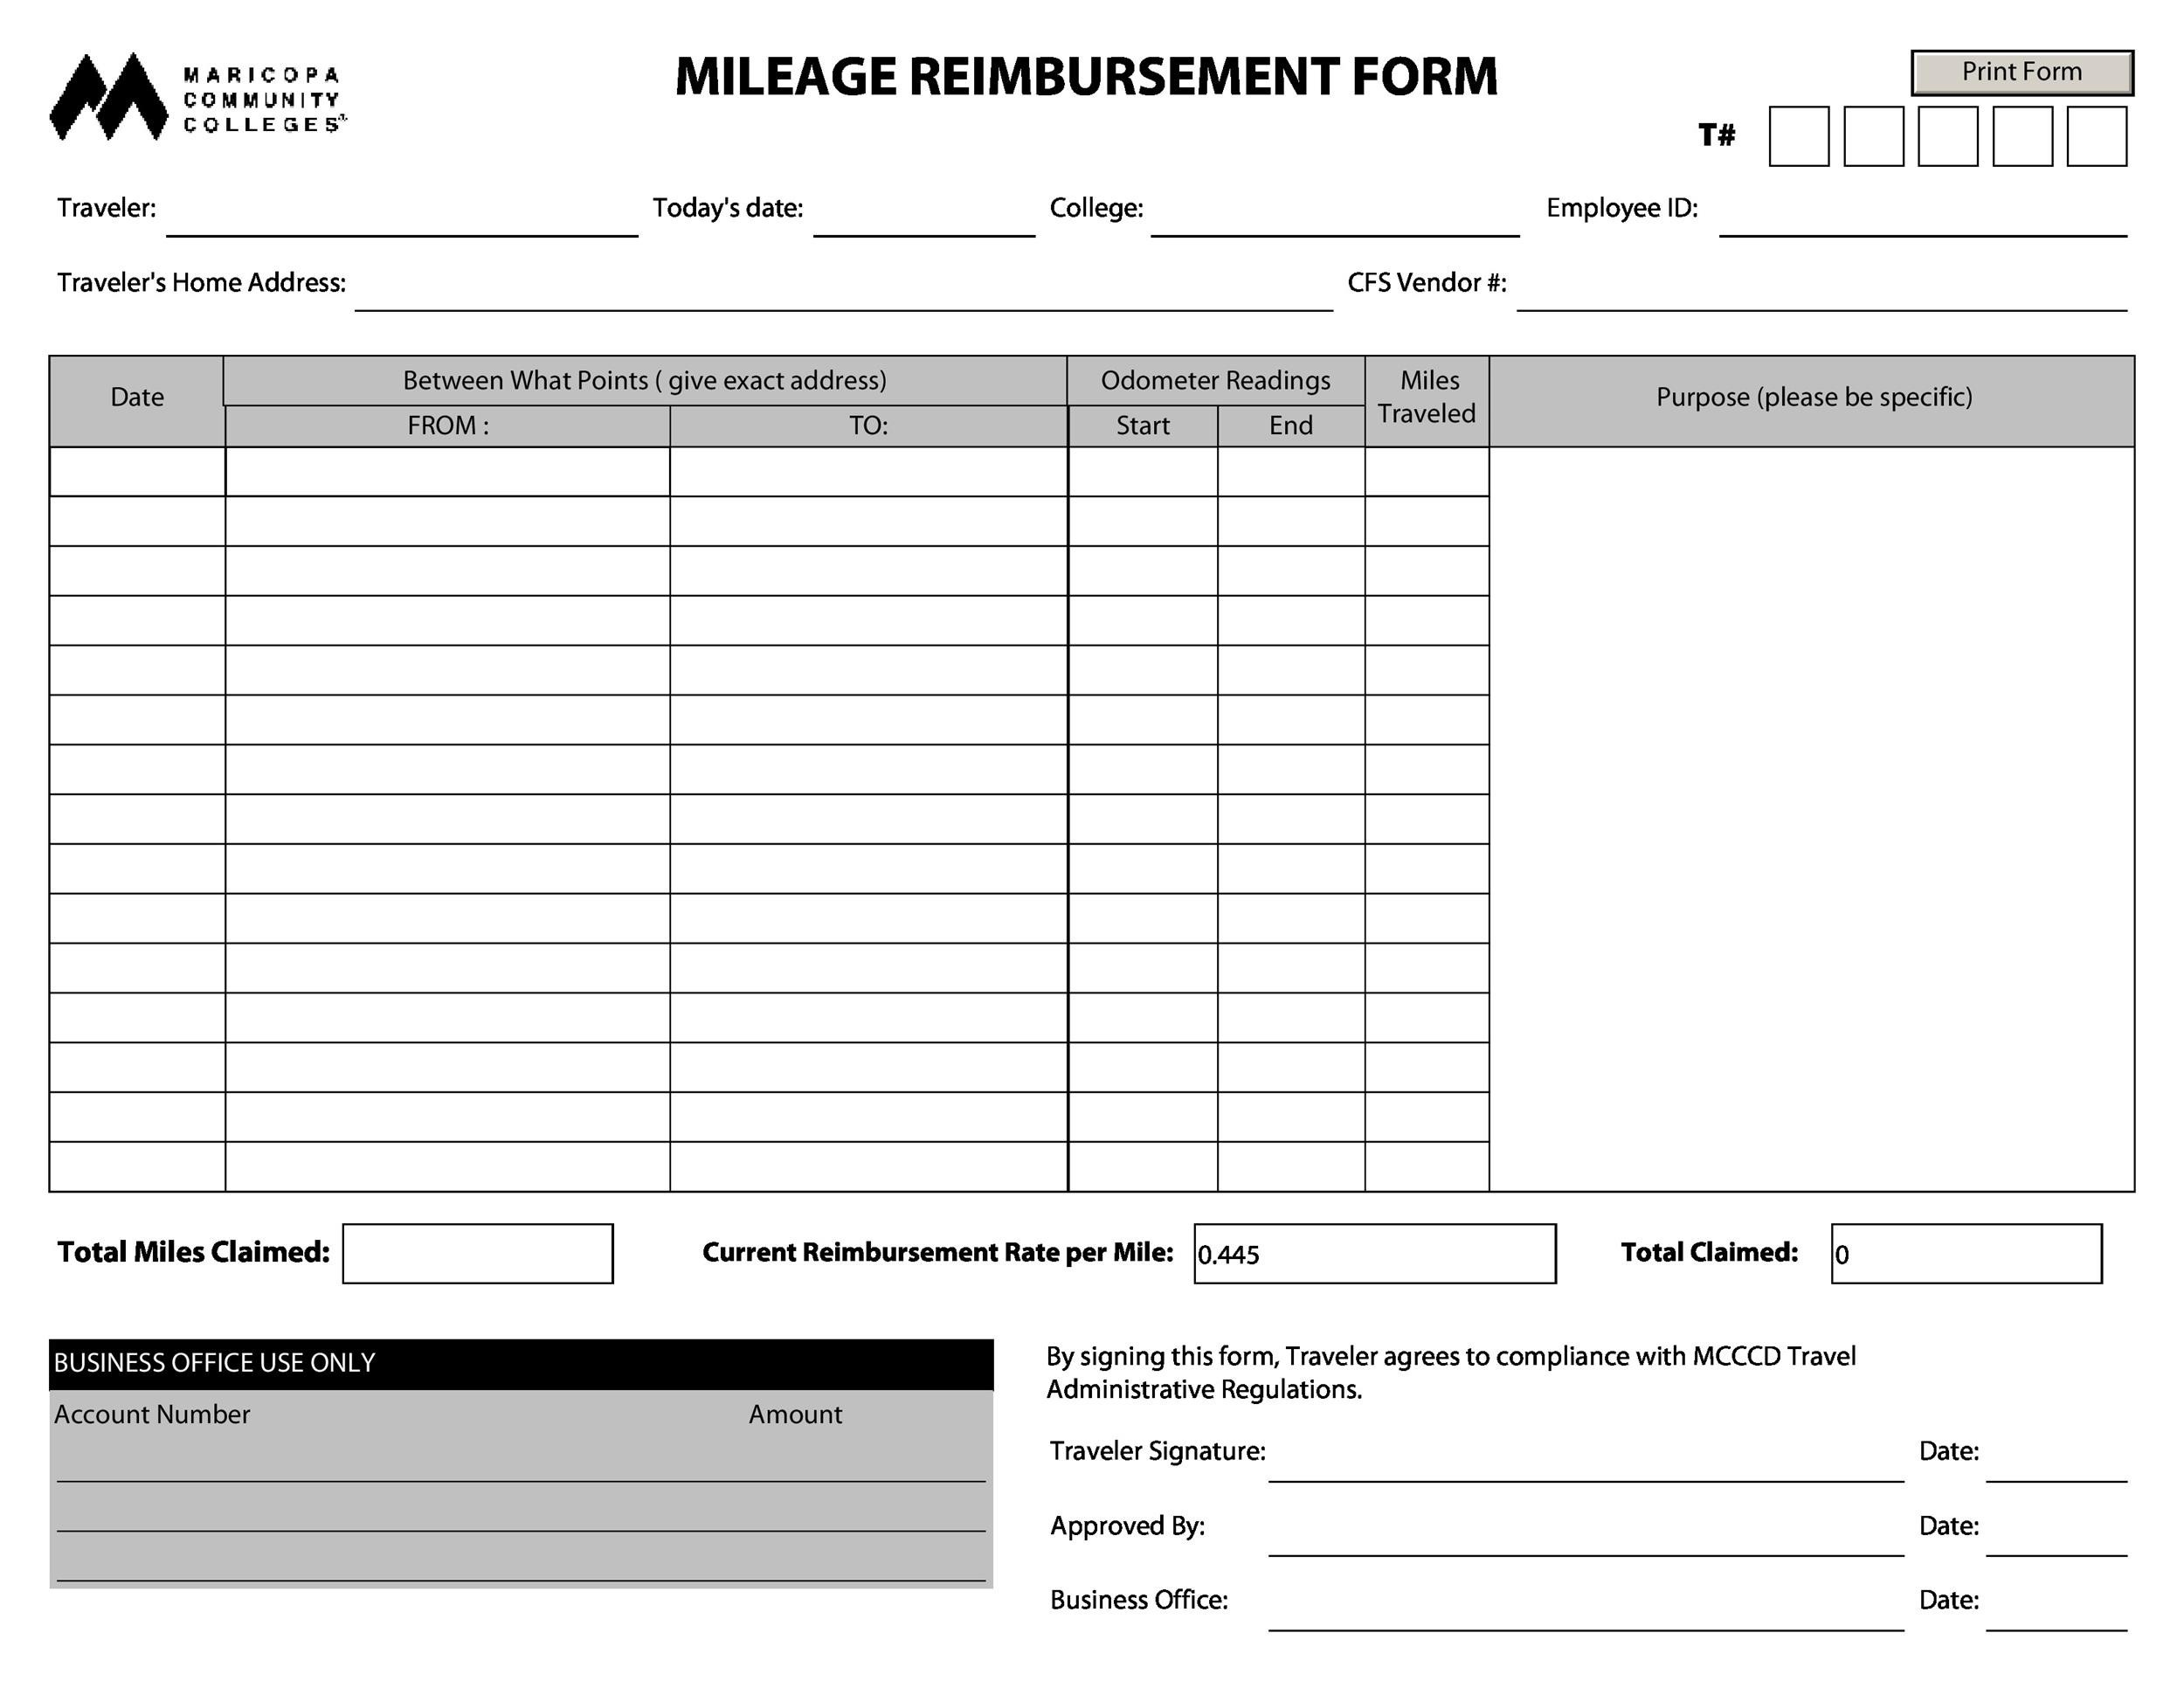 Tuition Reimbursement Form Template - Apigram.Com